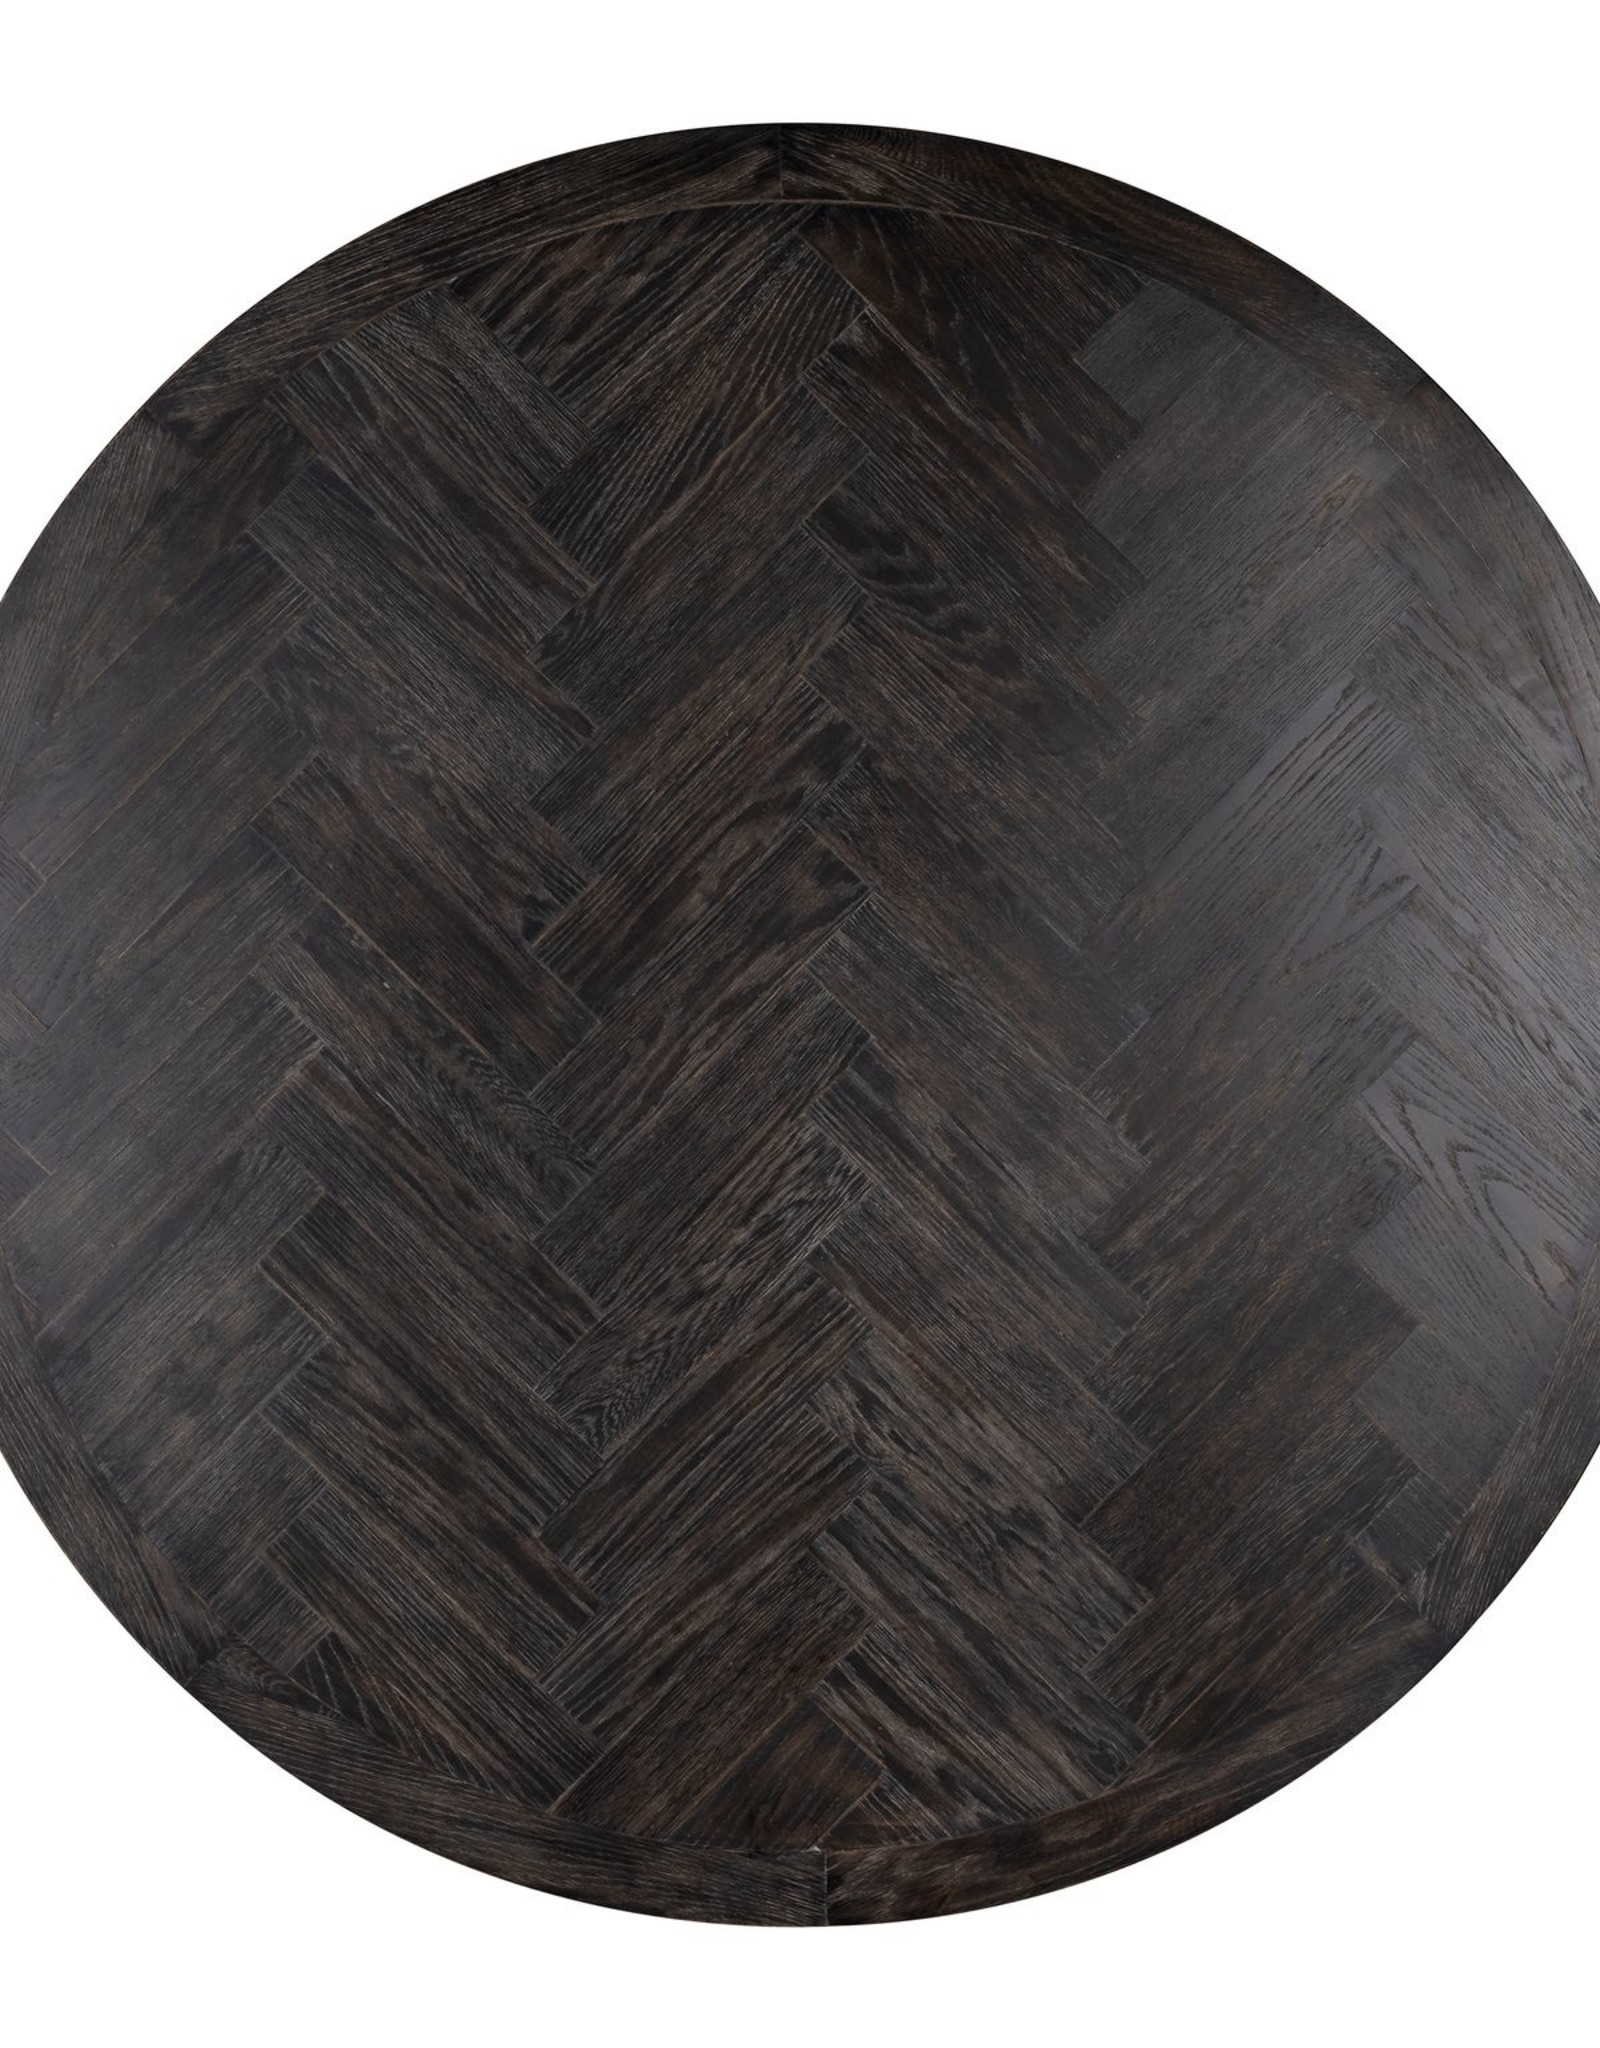 Richmond Interiors Eettafel Blackbone gold rond Ø140